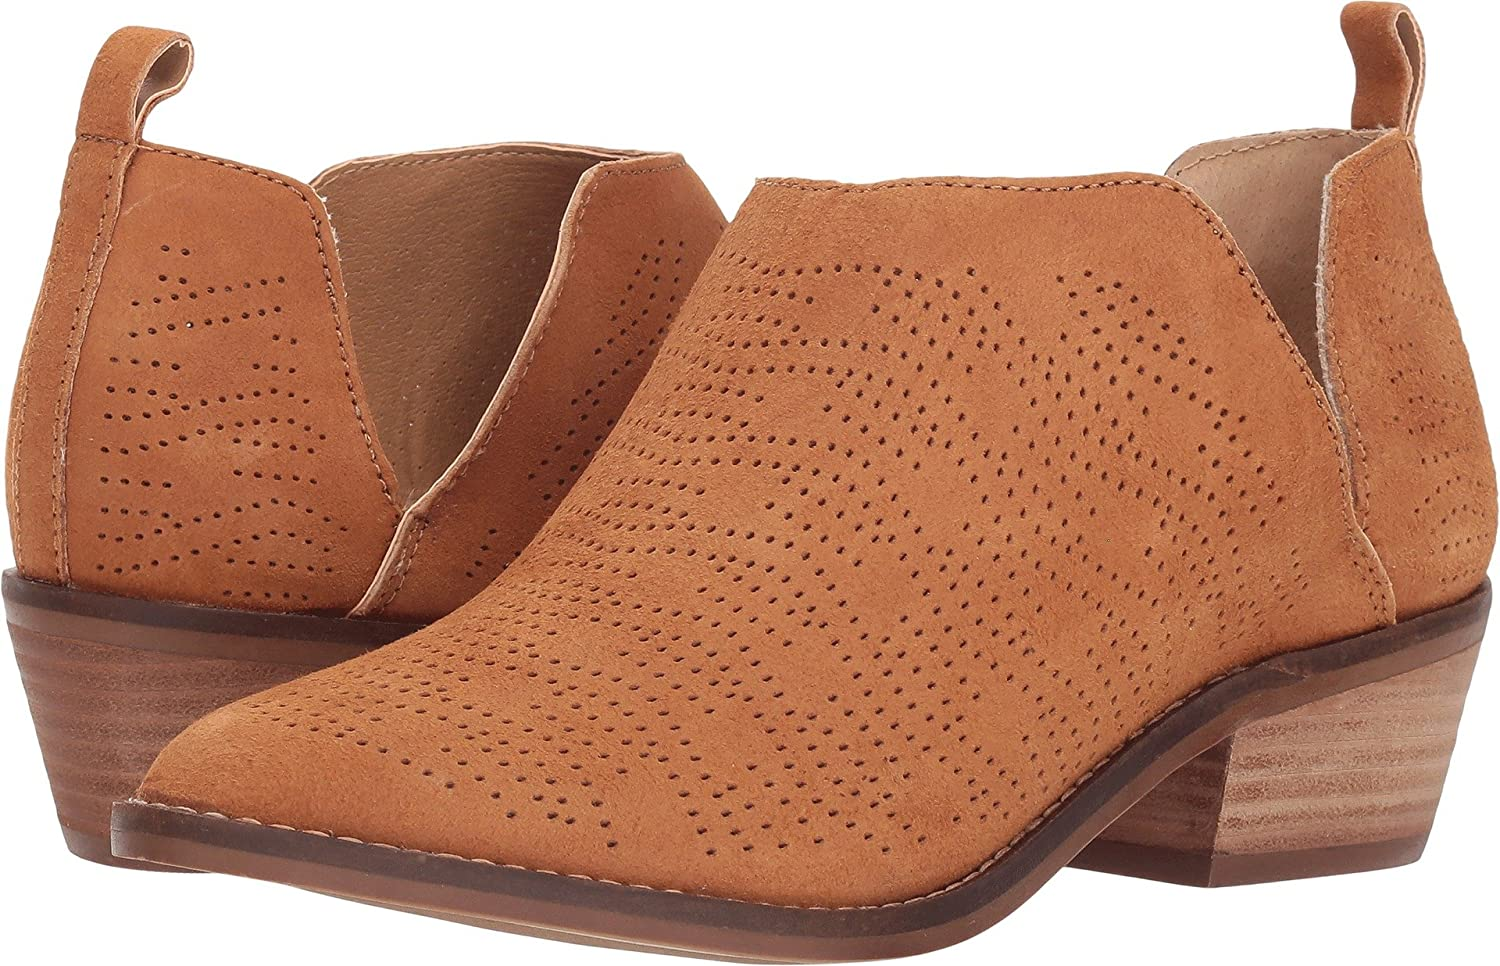 Lucky Brand Women's Fayth Ankle Boot B07CK97HRK 8.5 B(M) US|Macaroon